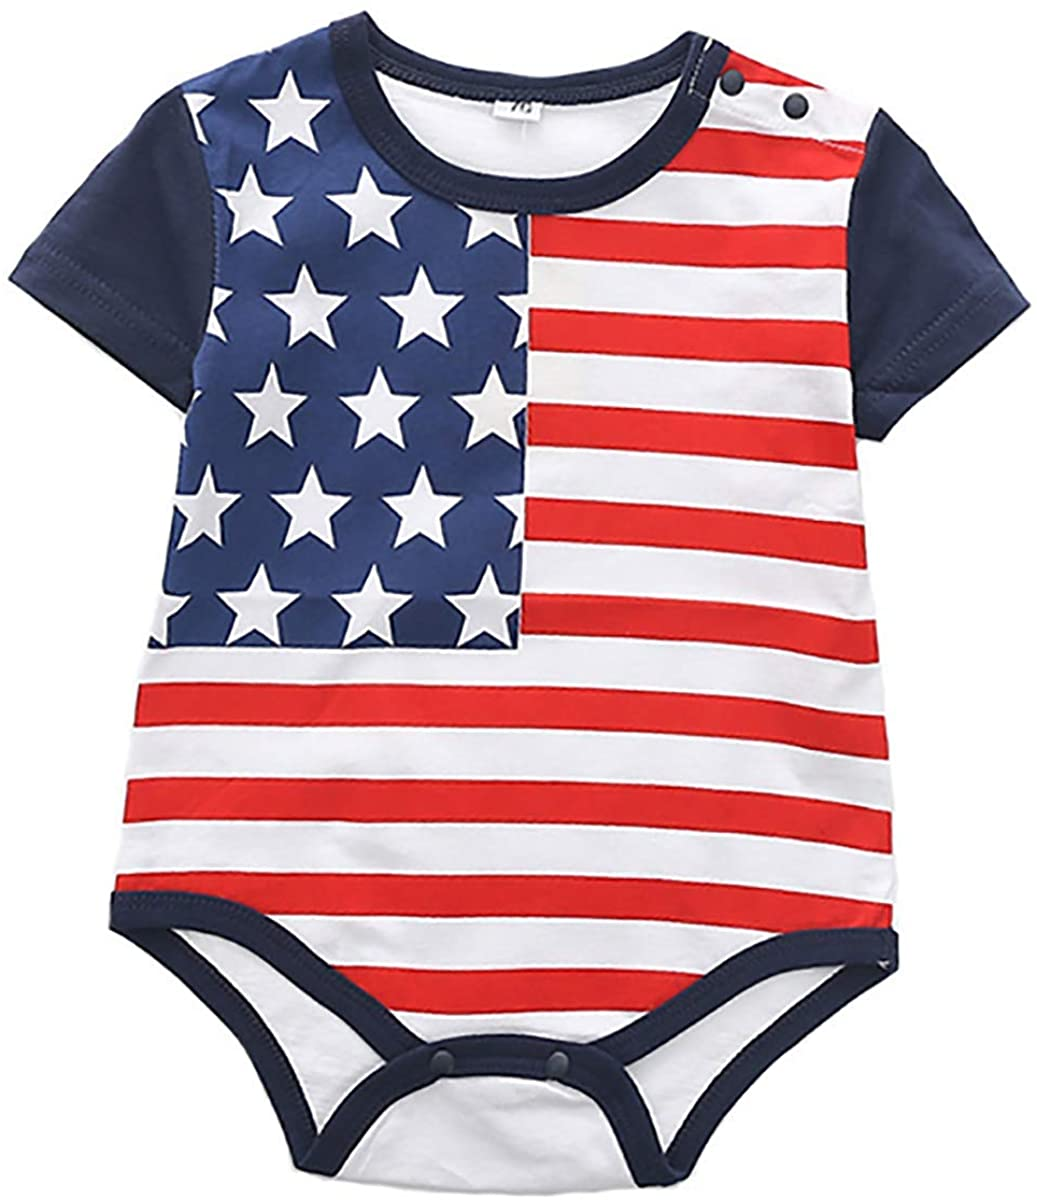 LYSMuch 4th of July Baby Boys Girls Romper Independence Day Outfit American Flag Bodysuit Toddler Patriotic Clothes